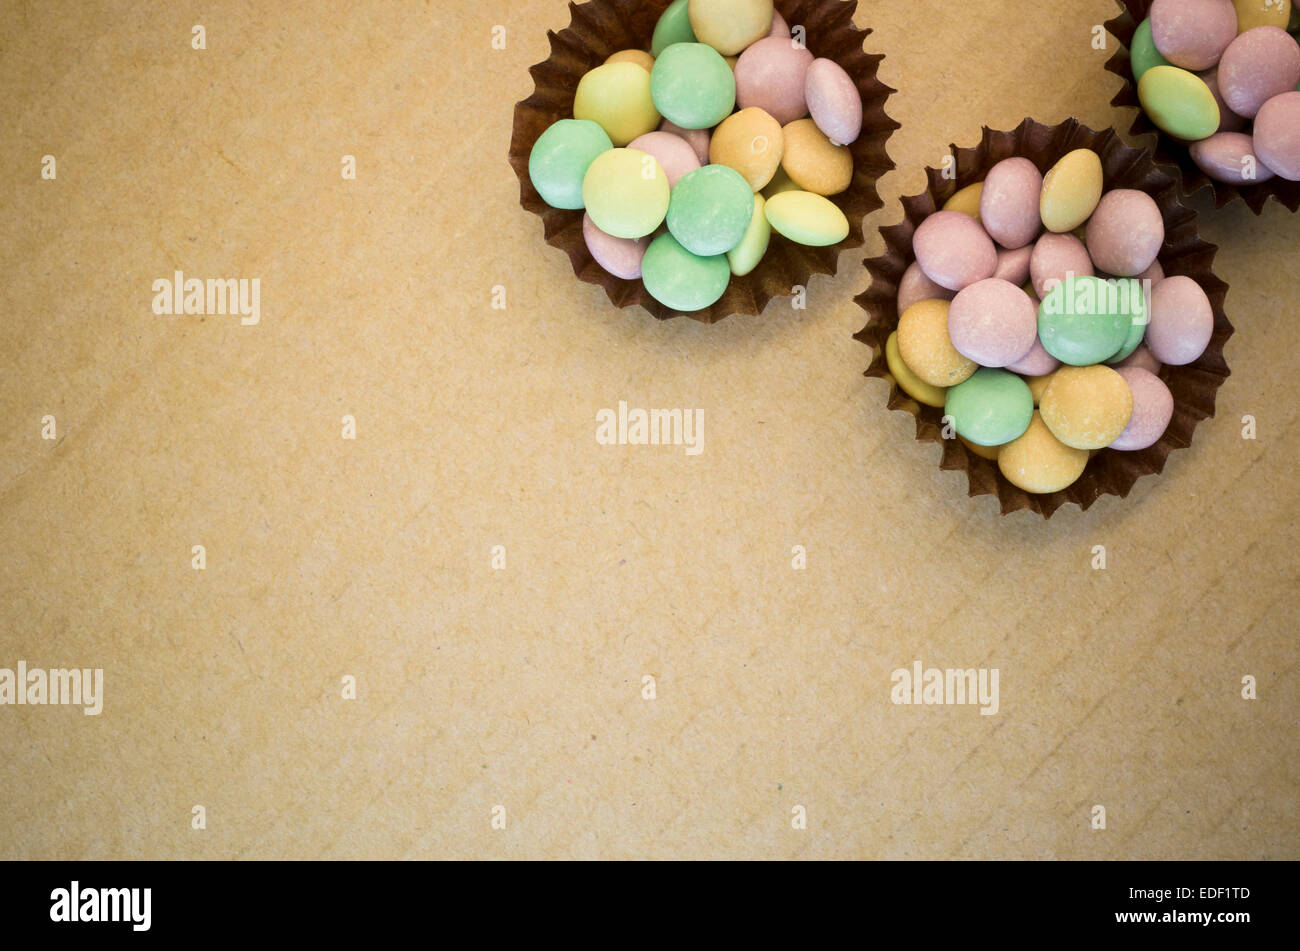 many little colorful sugar bonbons on a paperboard surface - Stock Image